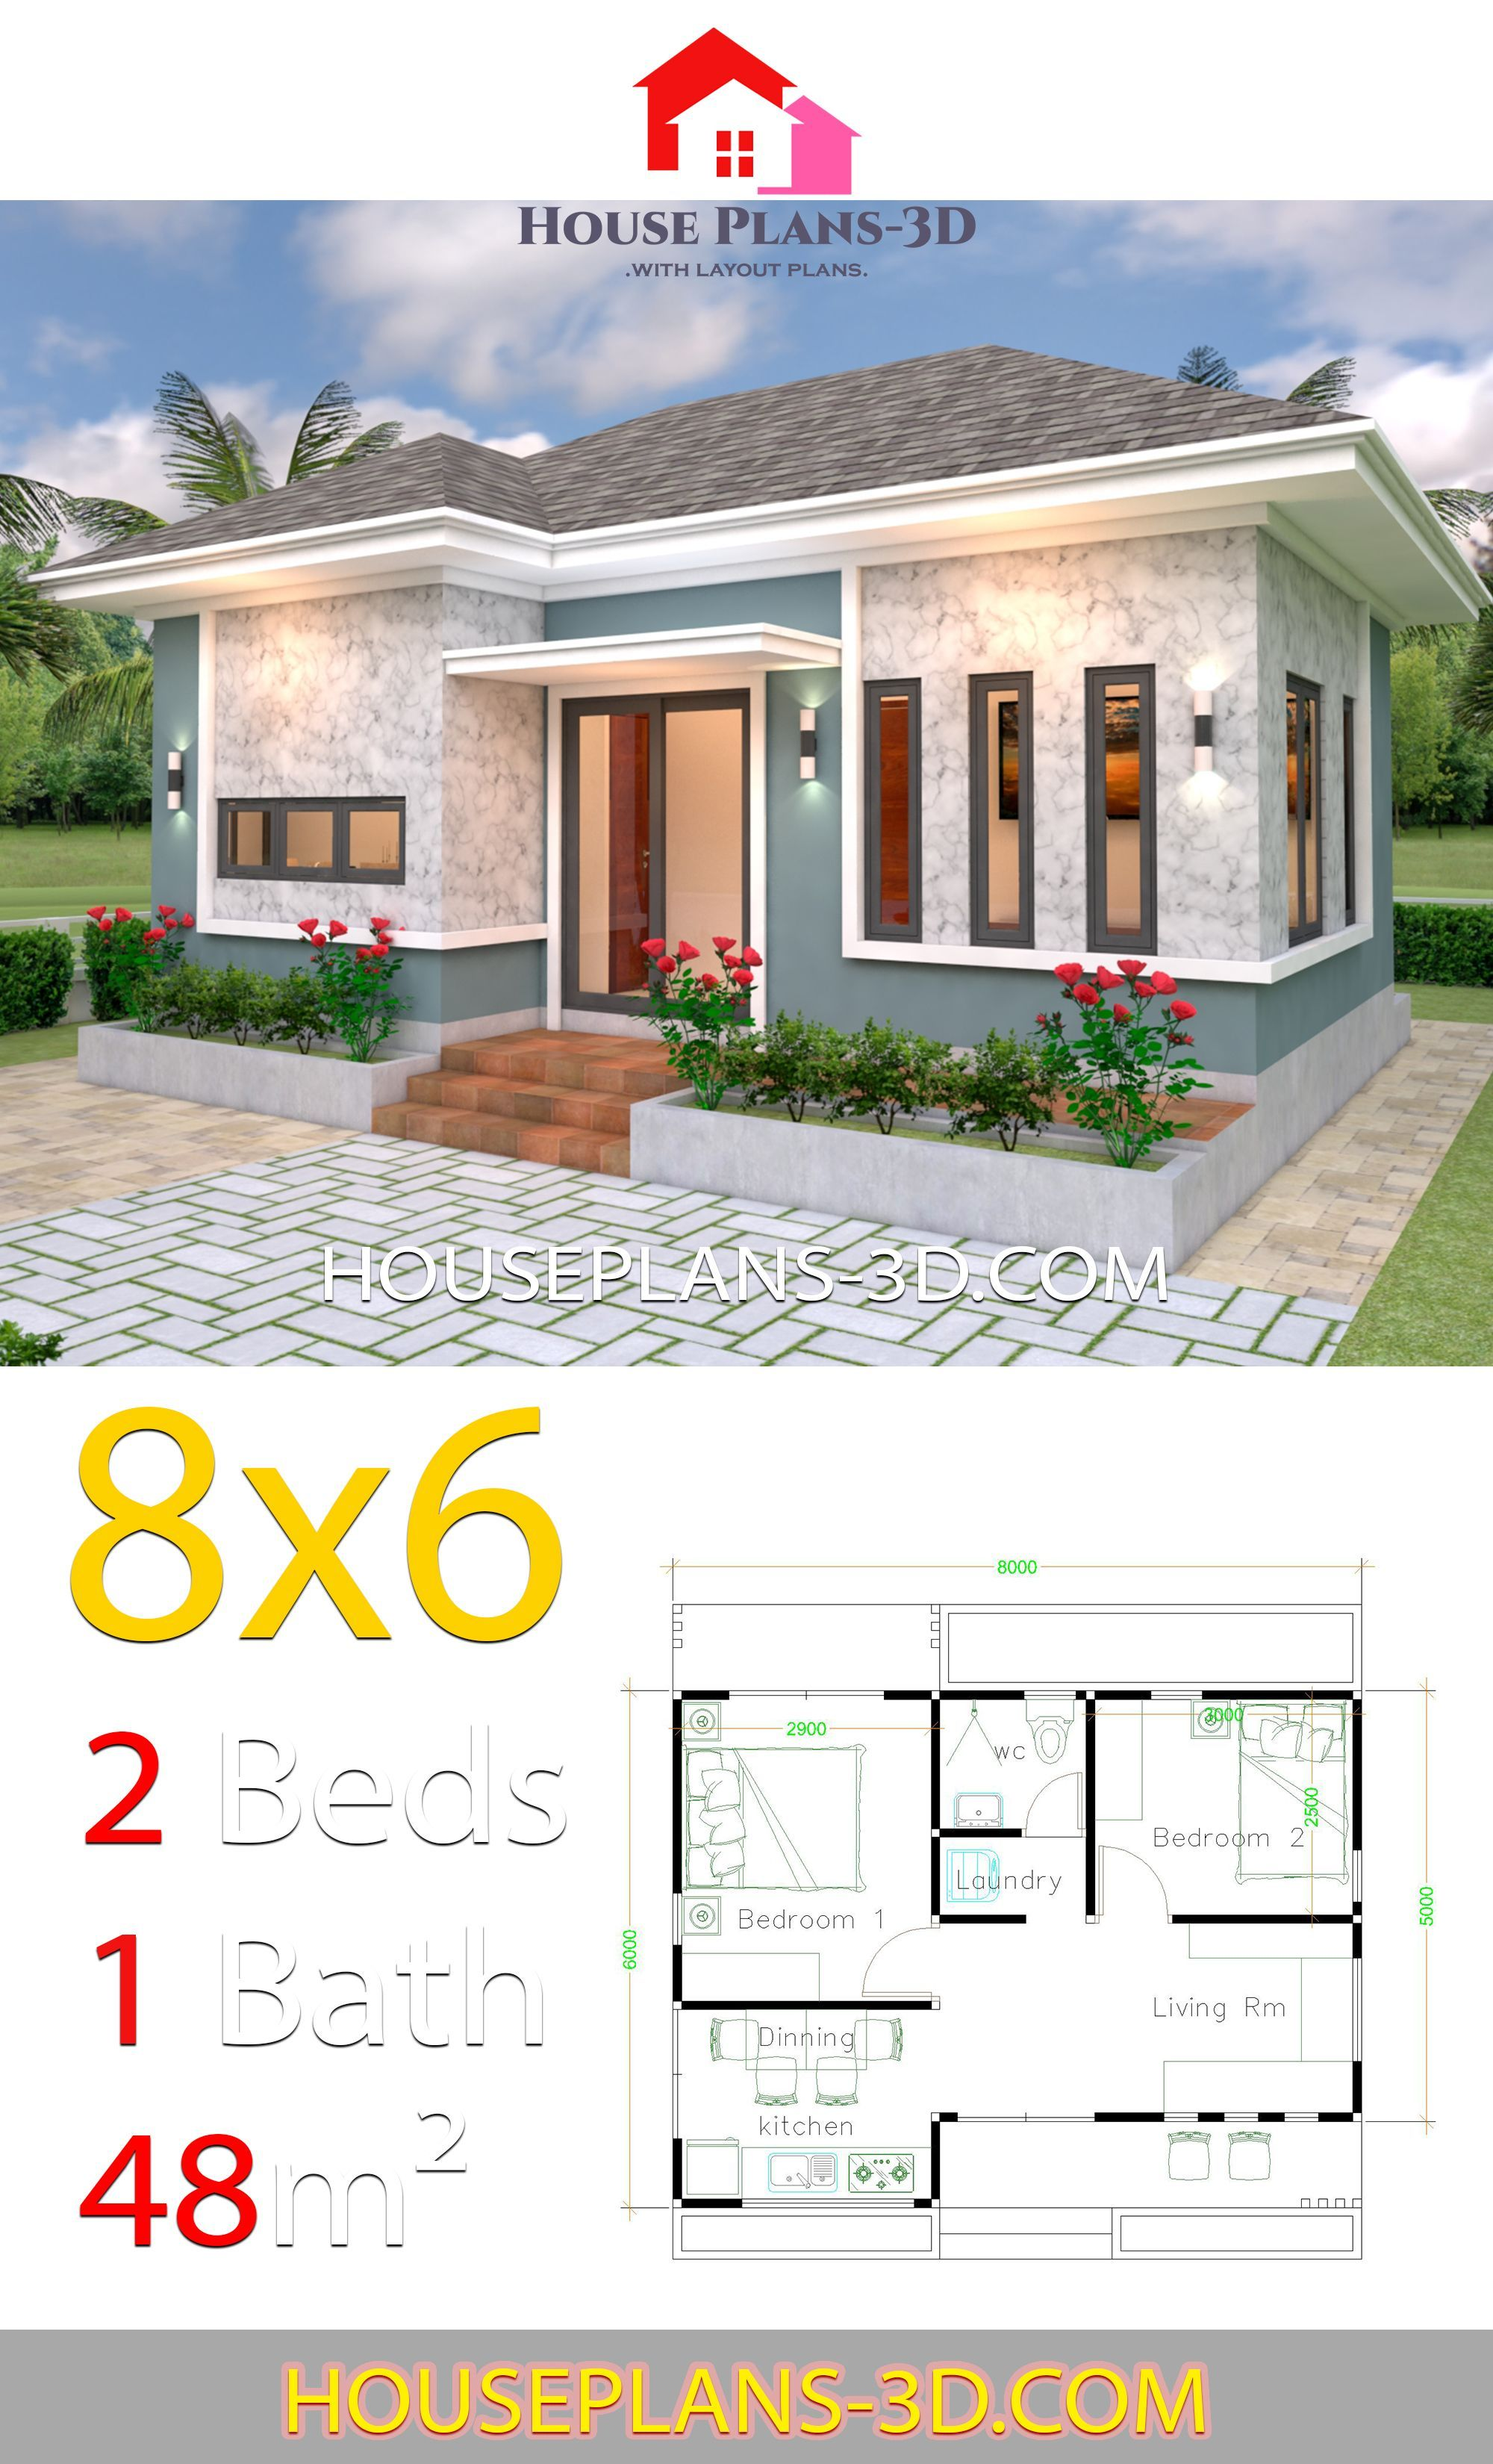 Pin By Lizzie Yokastha On Exterior In 2020 House Plans House Plans Mansion House Plan Gallery